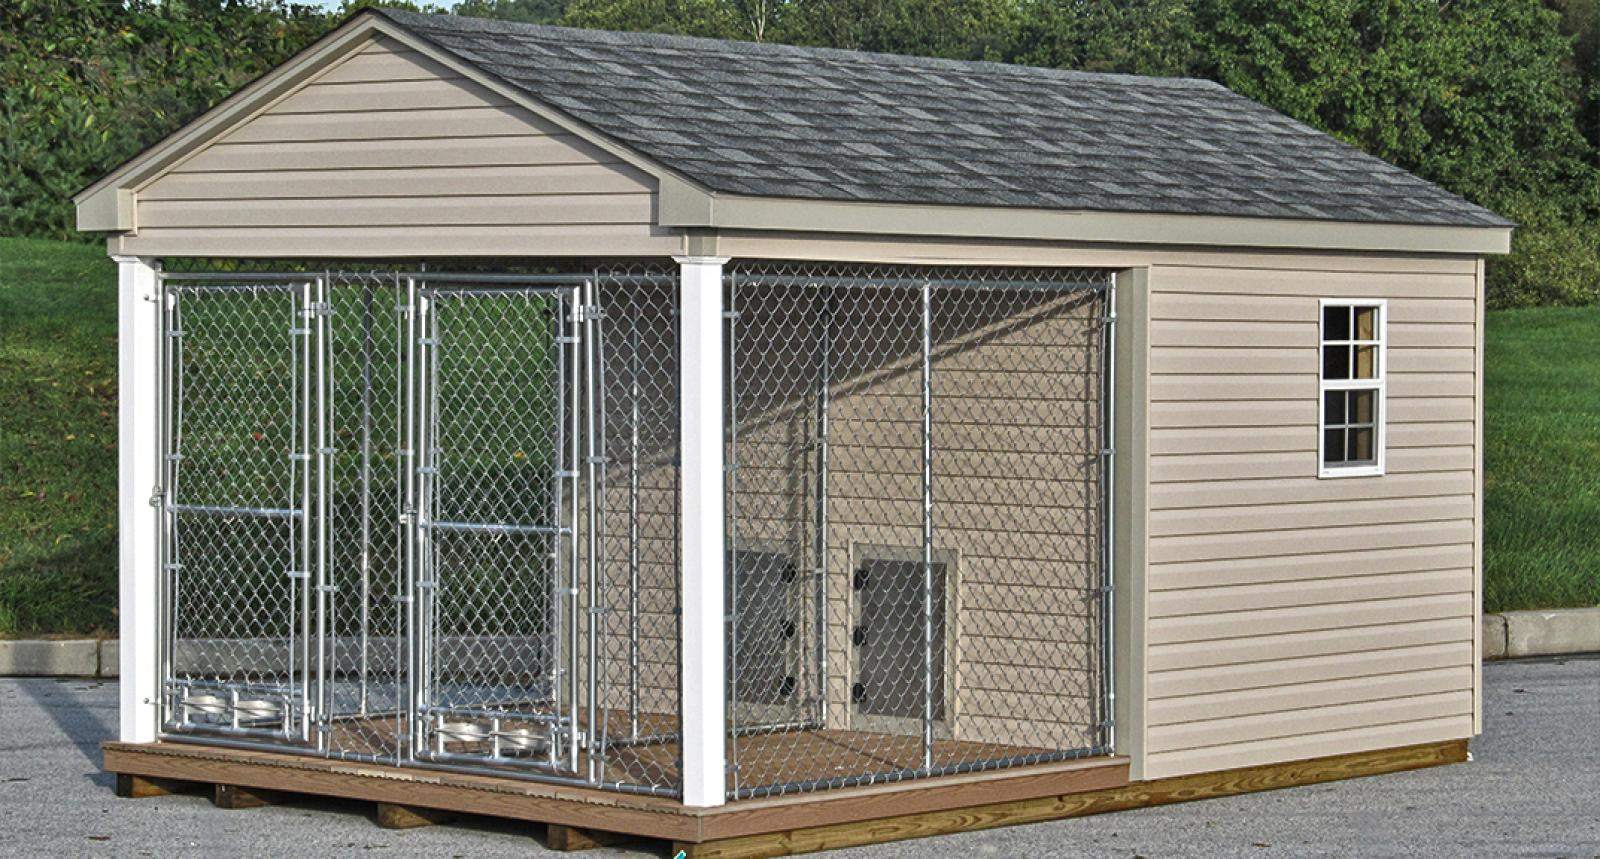 dog kennels designs photo albums catchy homes interior design ideas - Dog Kennel Design Ideas